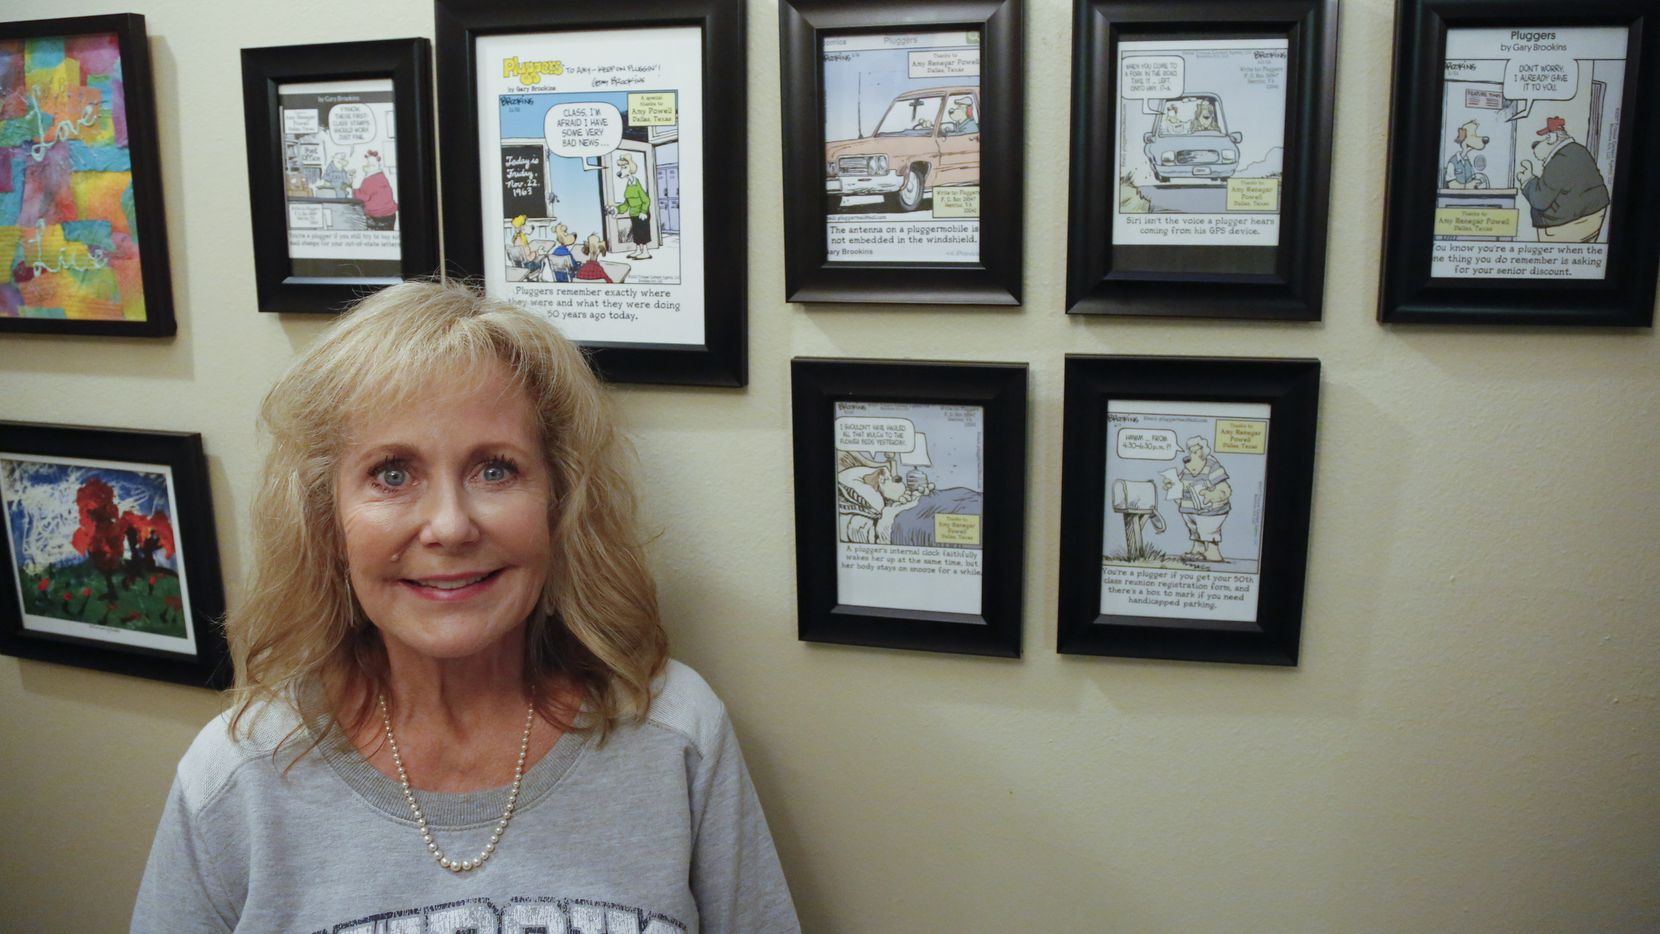 """Amy Powell has supplied the material for several Pluggers cartoons. She keeps a collection of her panels on a """"wall of fame"""" in her Dallas home."""